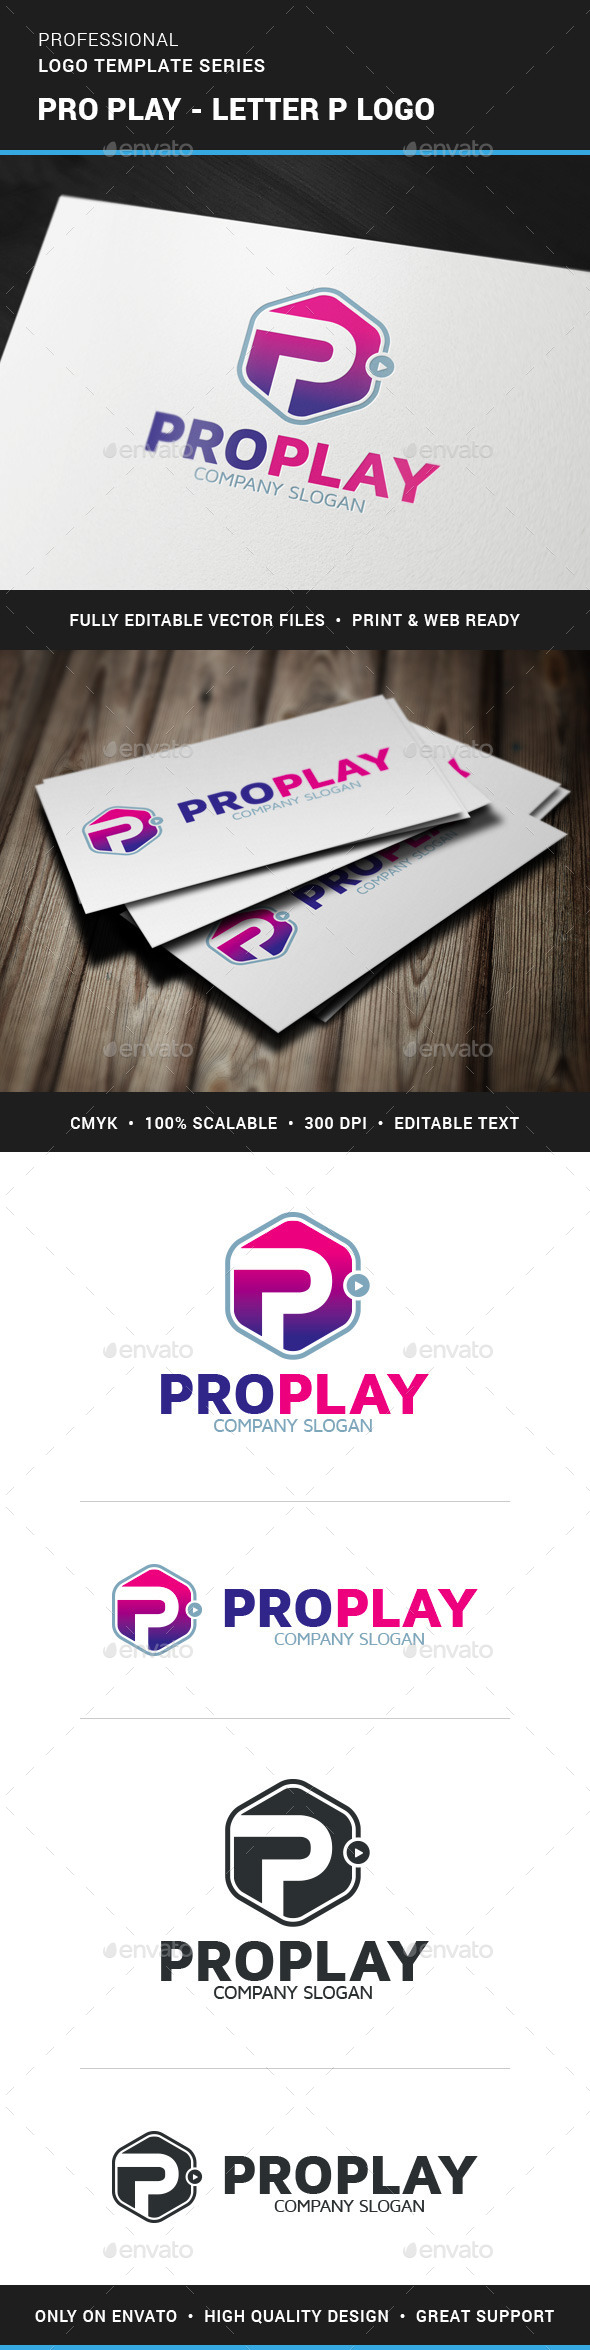 GraphicRiver Pro Play Letter P Logo 11766940